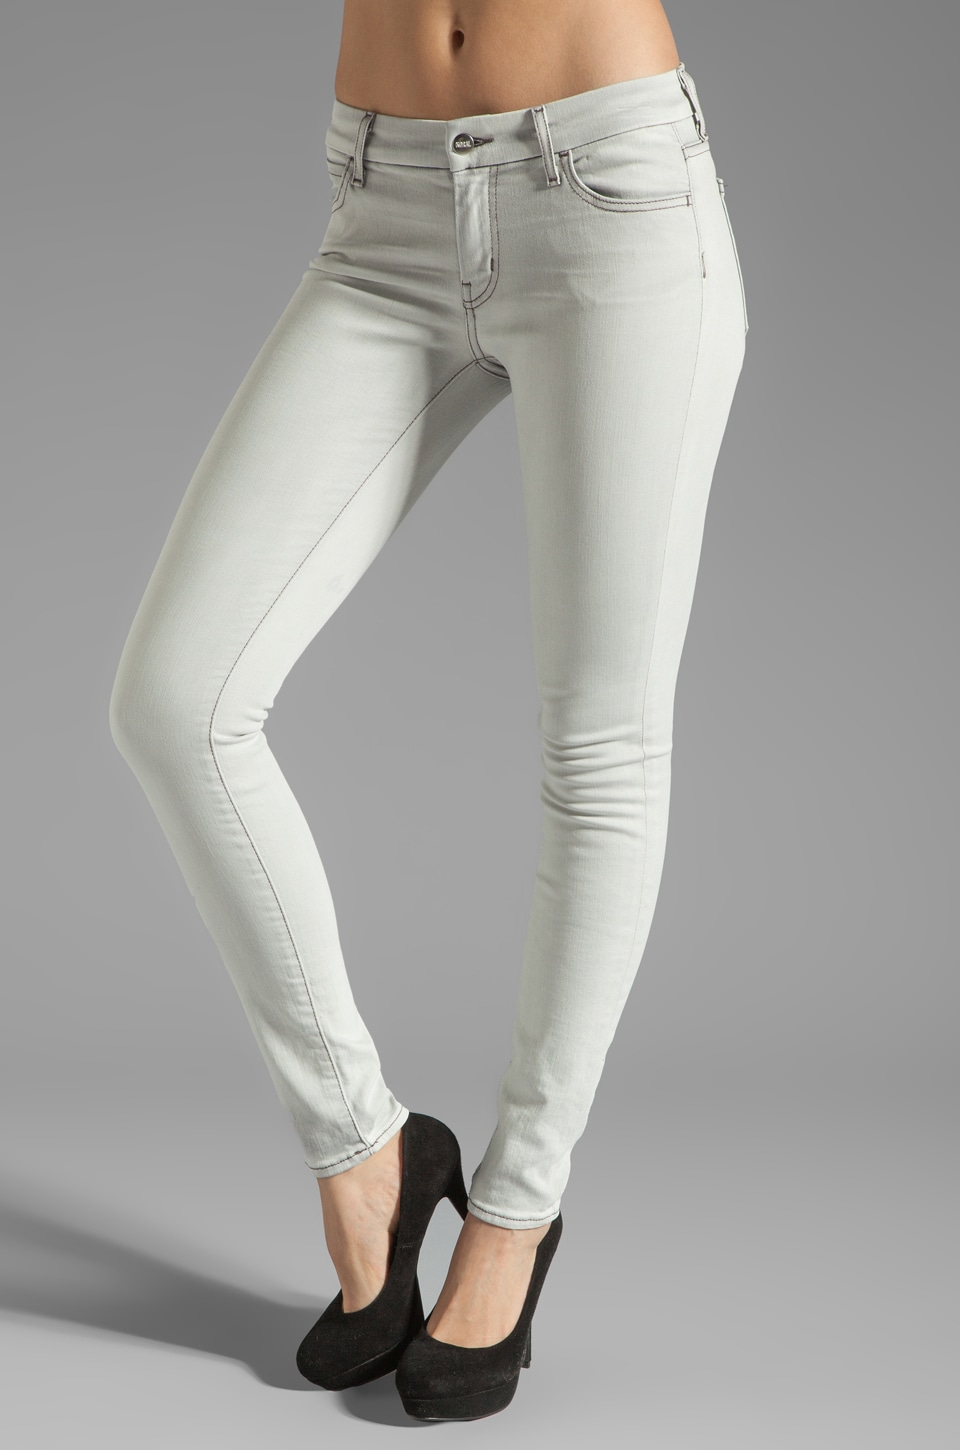 Koral Denim White Wash Skinny in Light